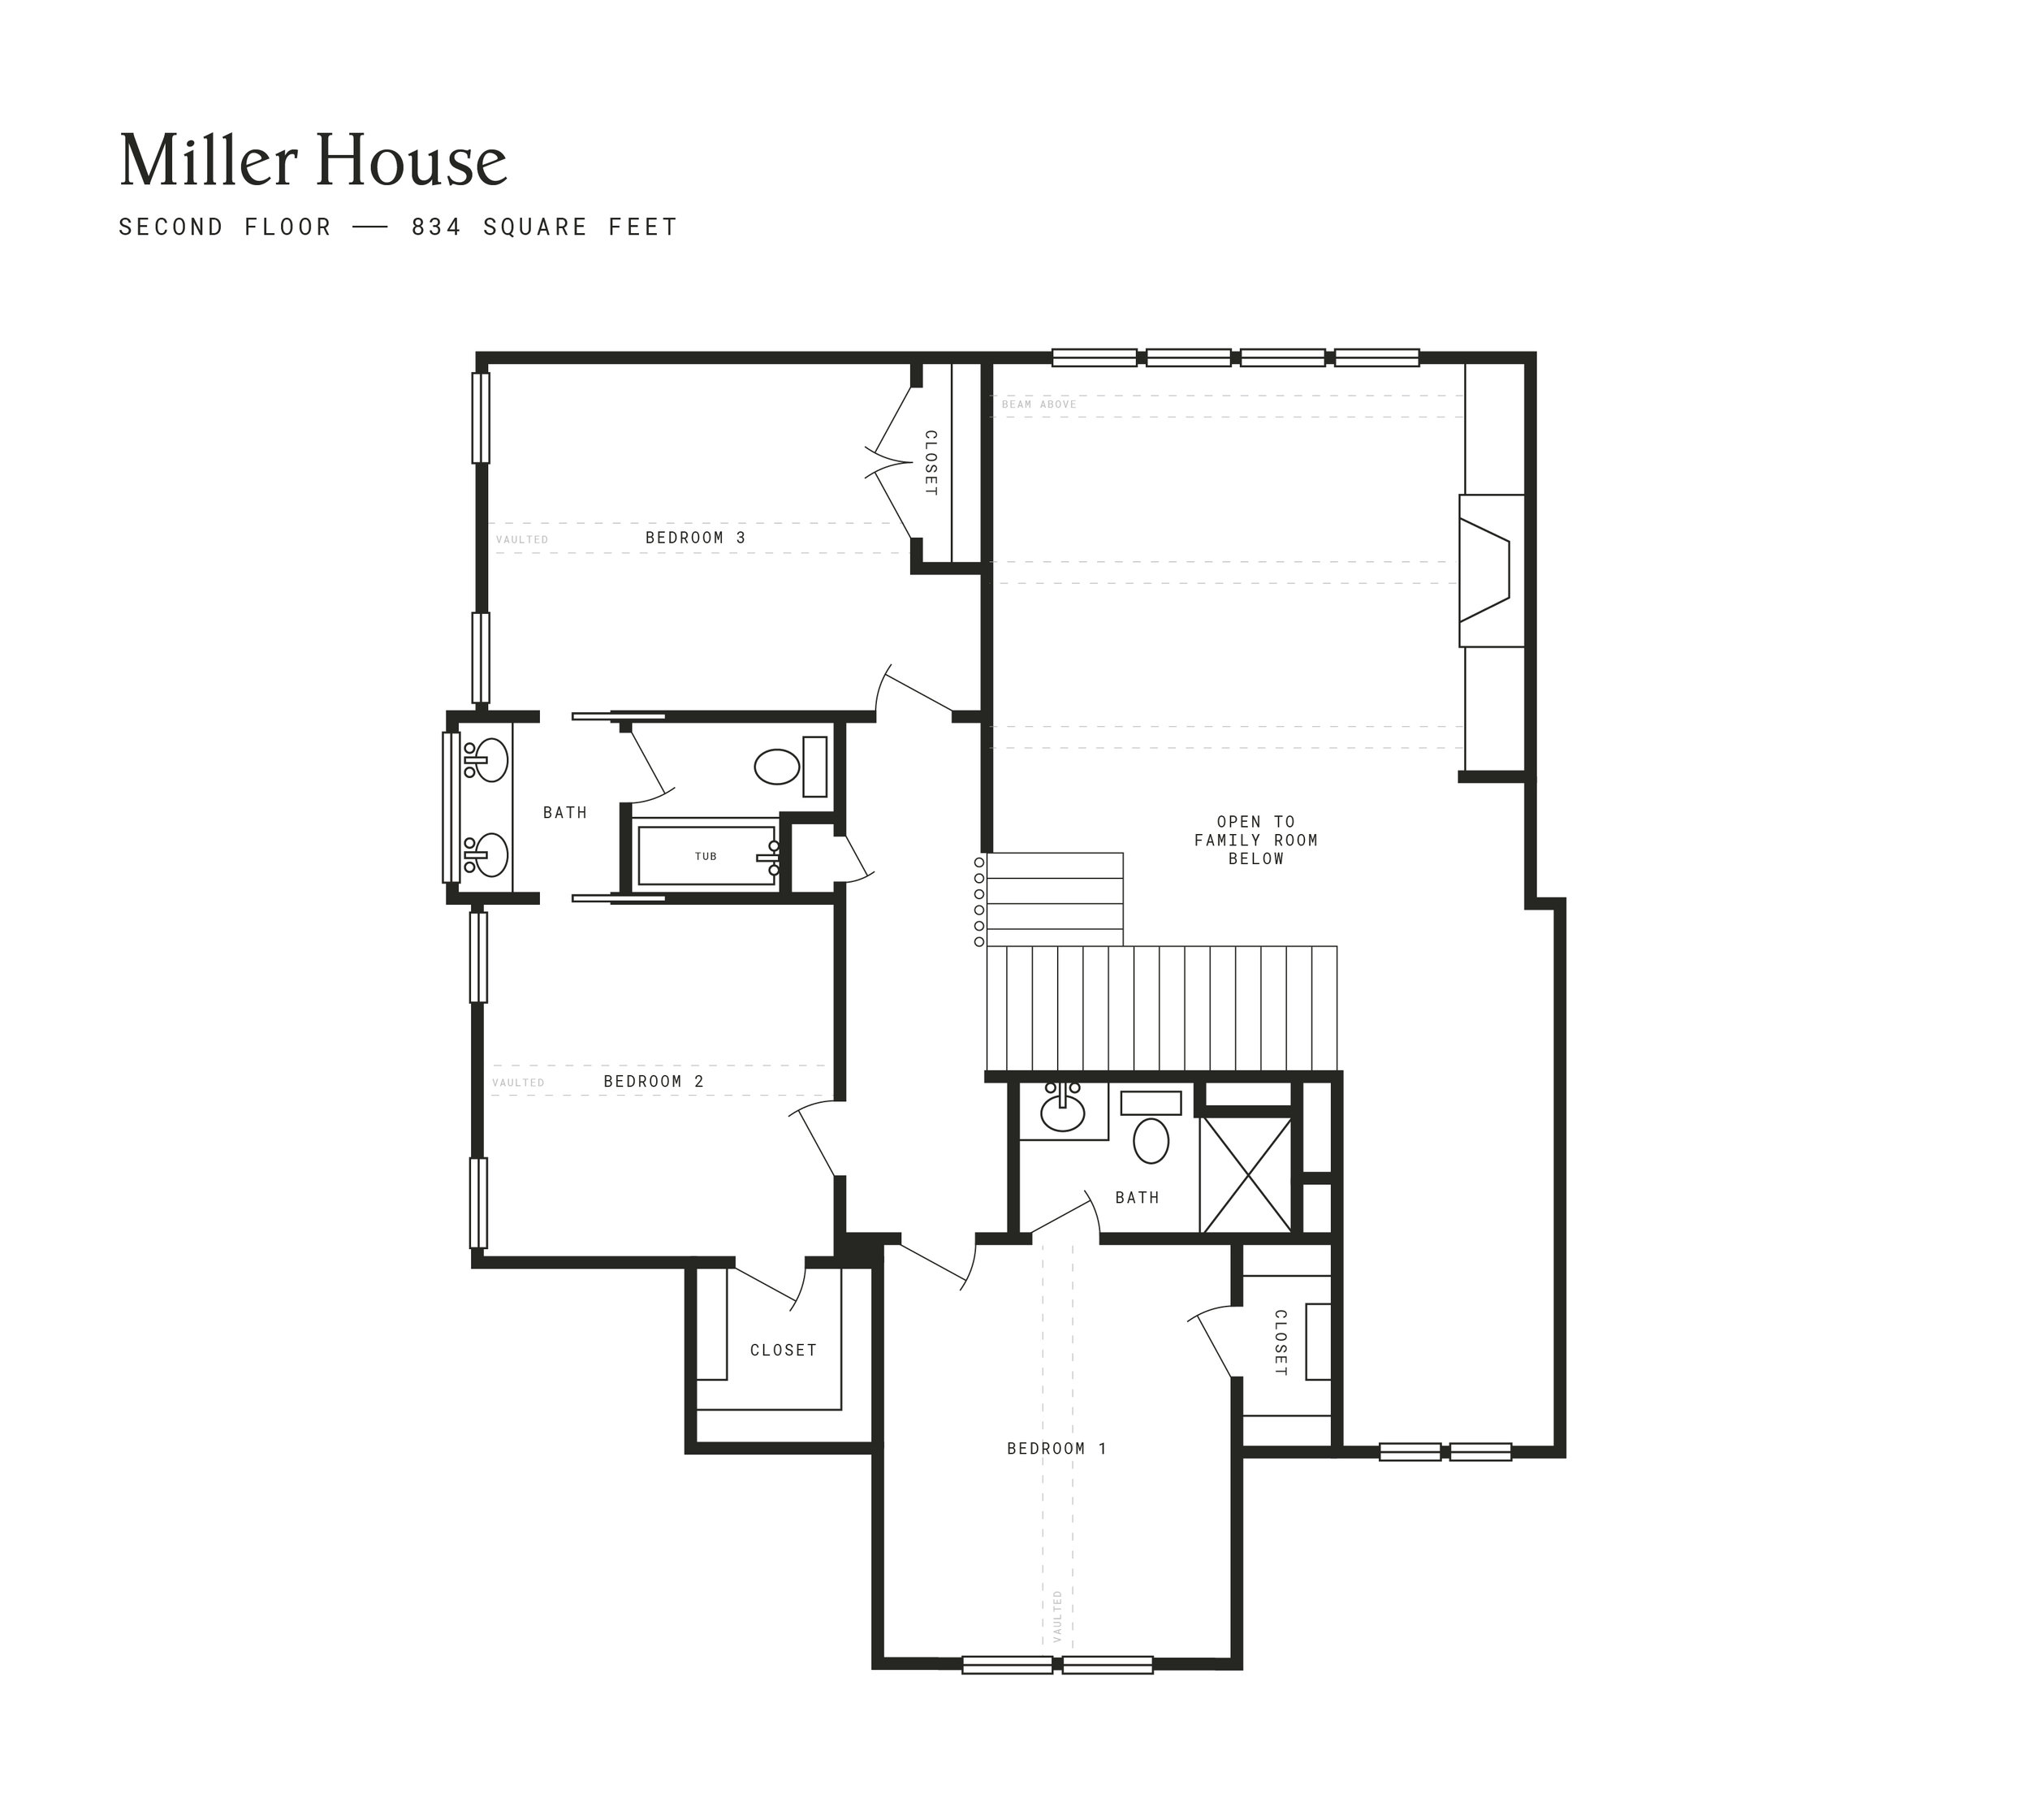 MillerHouse_FloorPlan-02.jpg